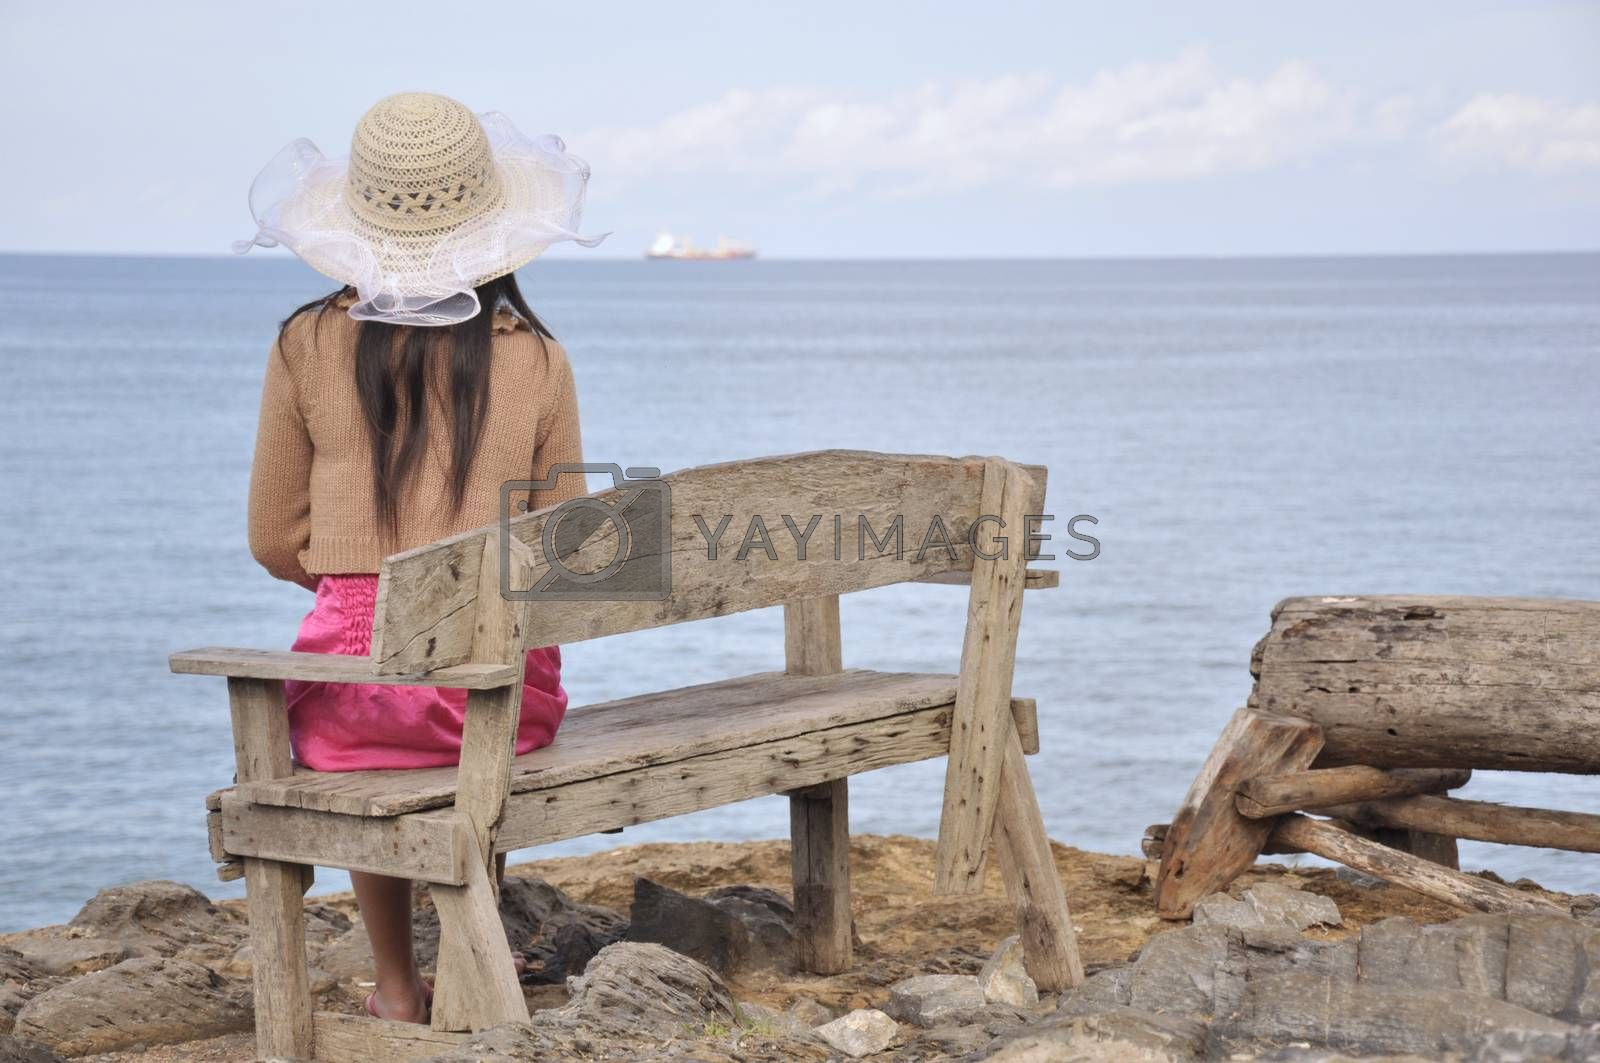 The back view of the girl wearing a pink dress looking at the sea,